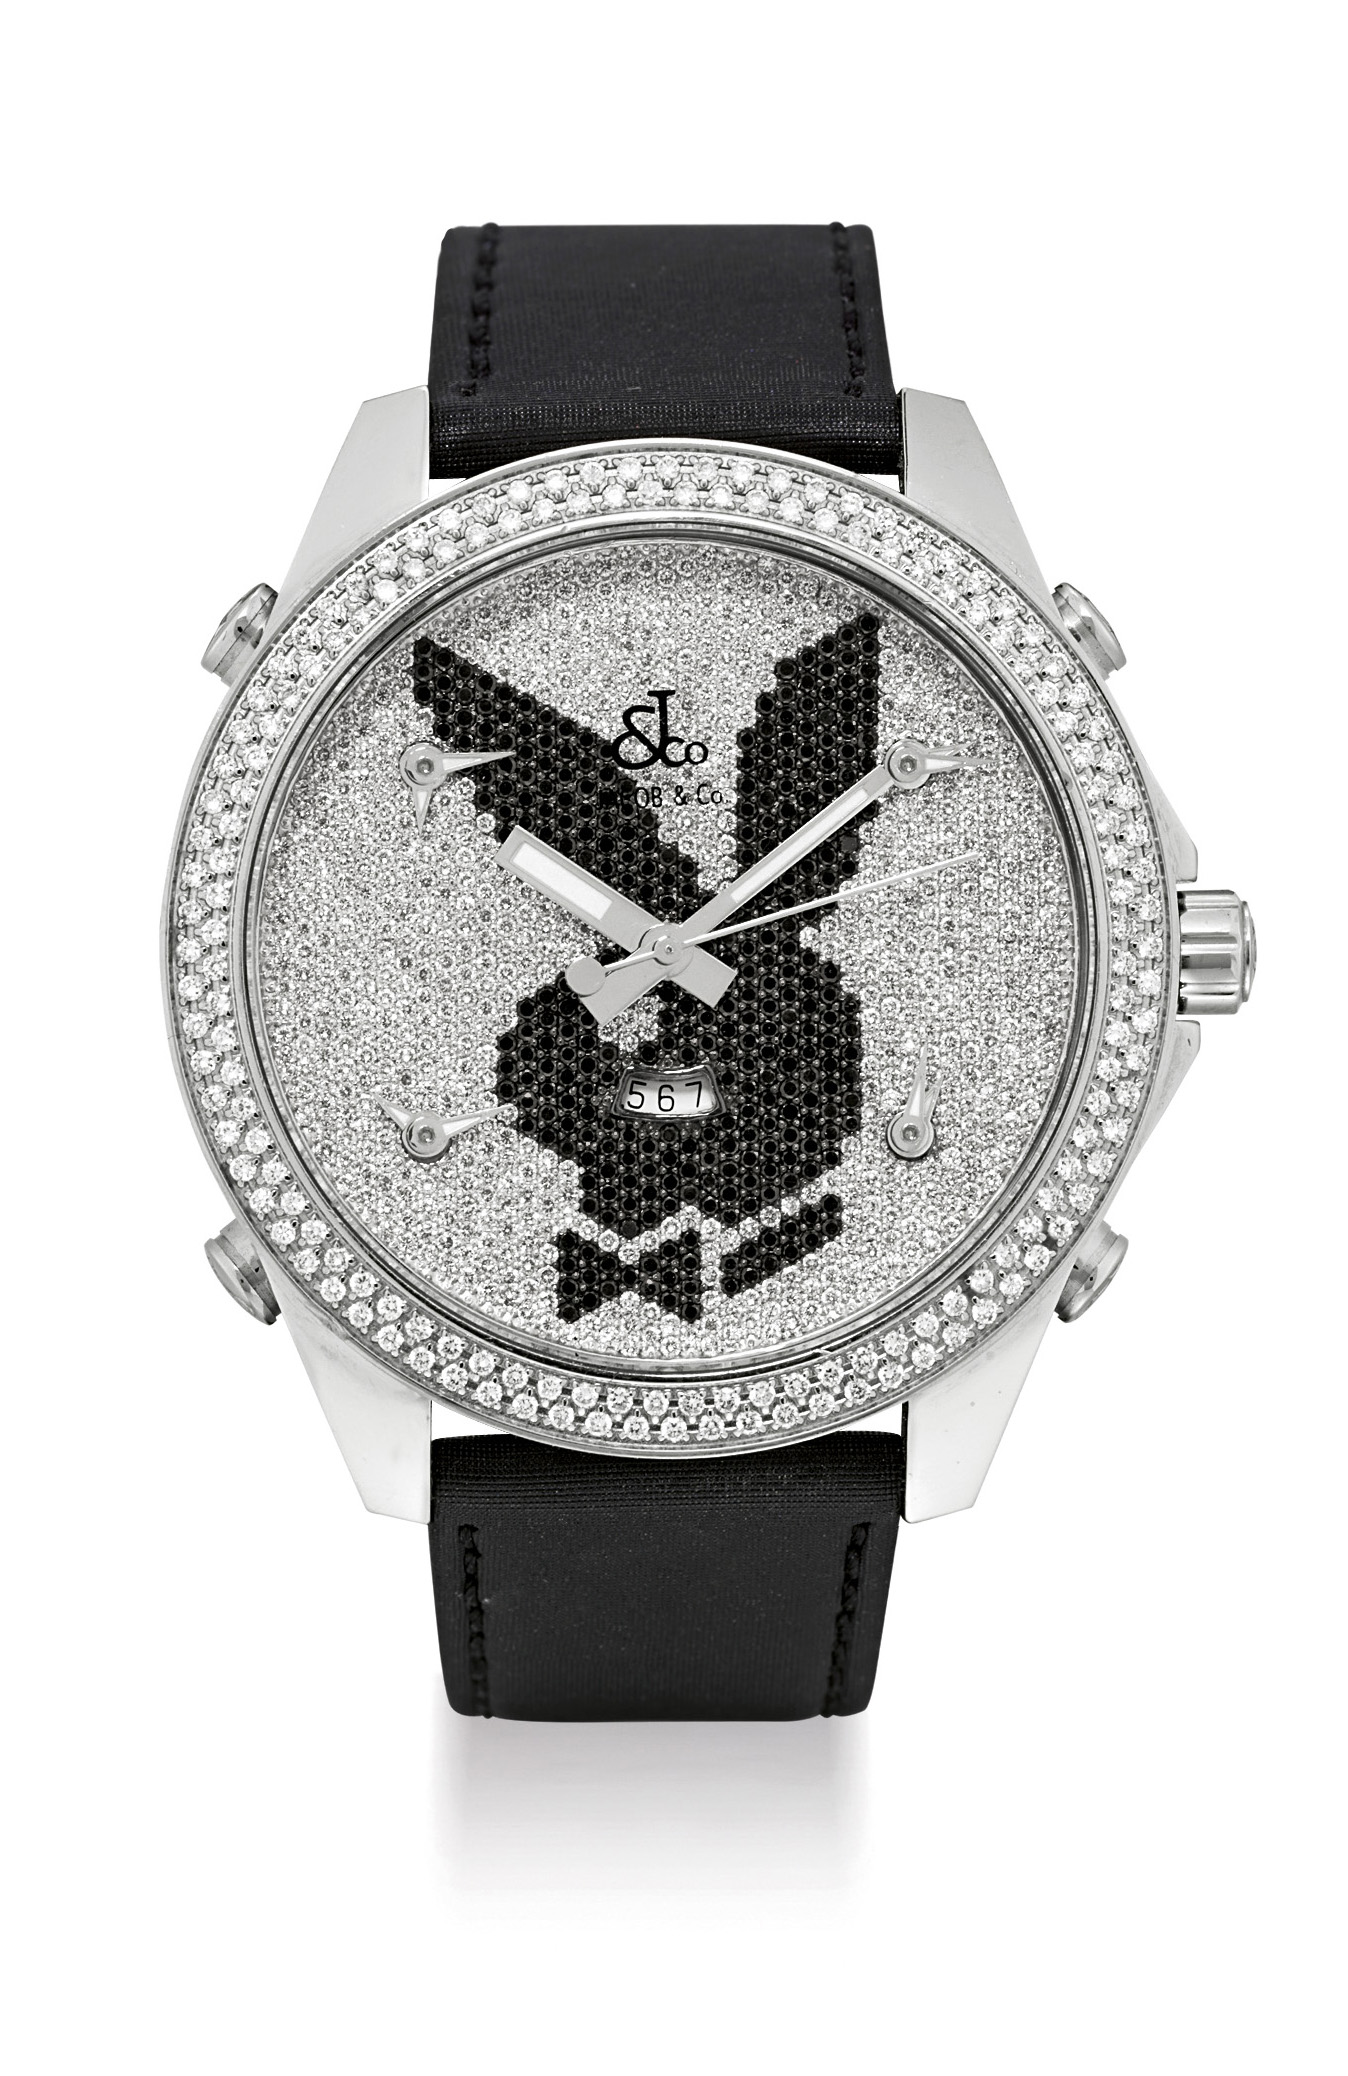 JACOB & CO. A STAINLESS STEEL, DIAMOND AND BLACK DIAMOND-SET FIVE TIME ZONE WRISTWATCH WITH SWEEP CENTRE SECONDS AND DATE